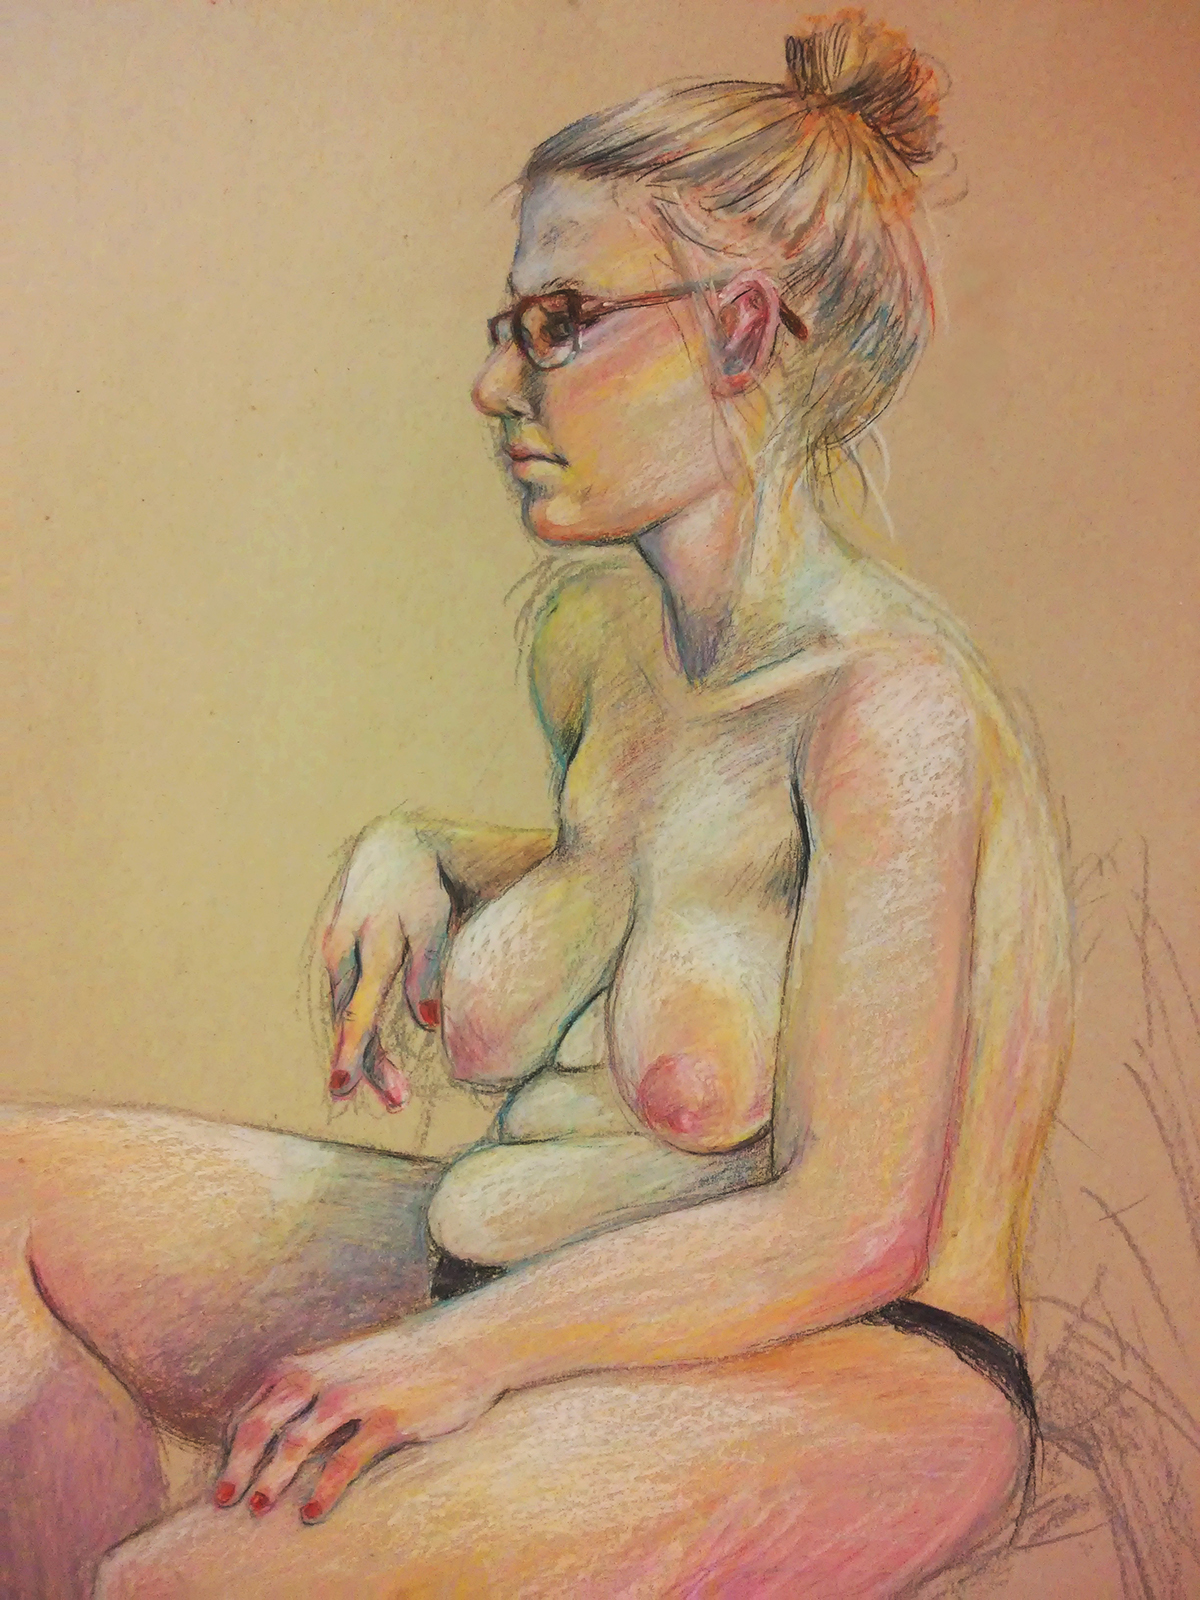 nude Figure Drawing oil pastels woman study Dry pastels